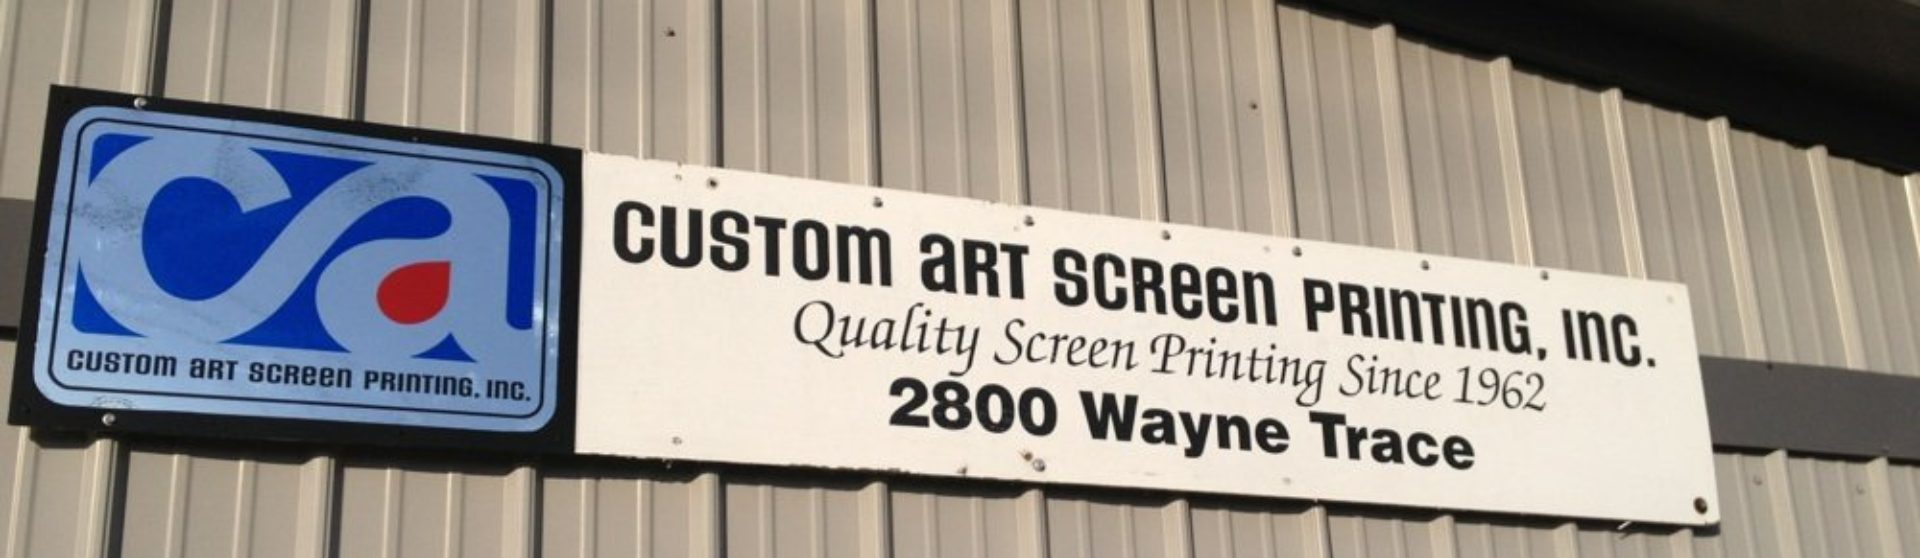 Custom Art Screen Printing Inc